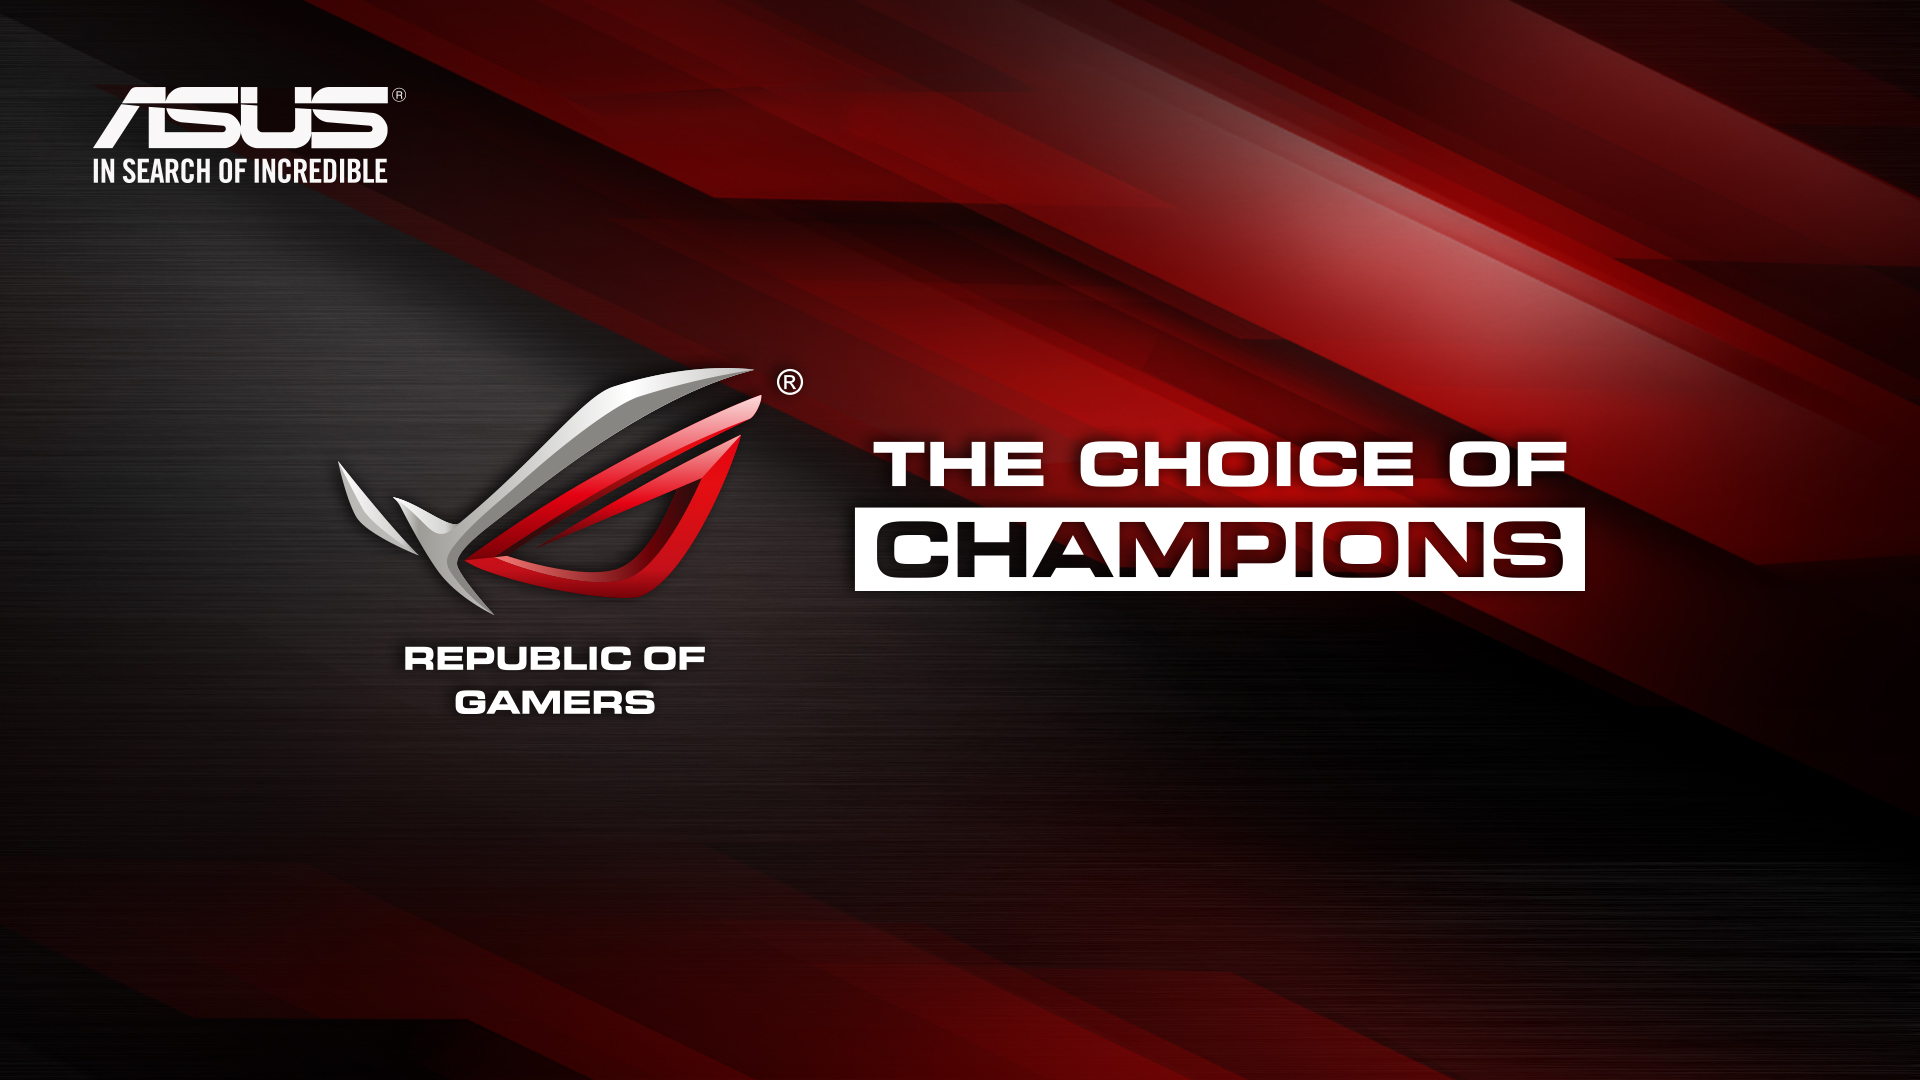 Asus Rog Wallpaper: ROG Official Wallpaper 2013 - Republic Of Gamers